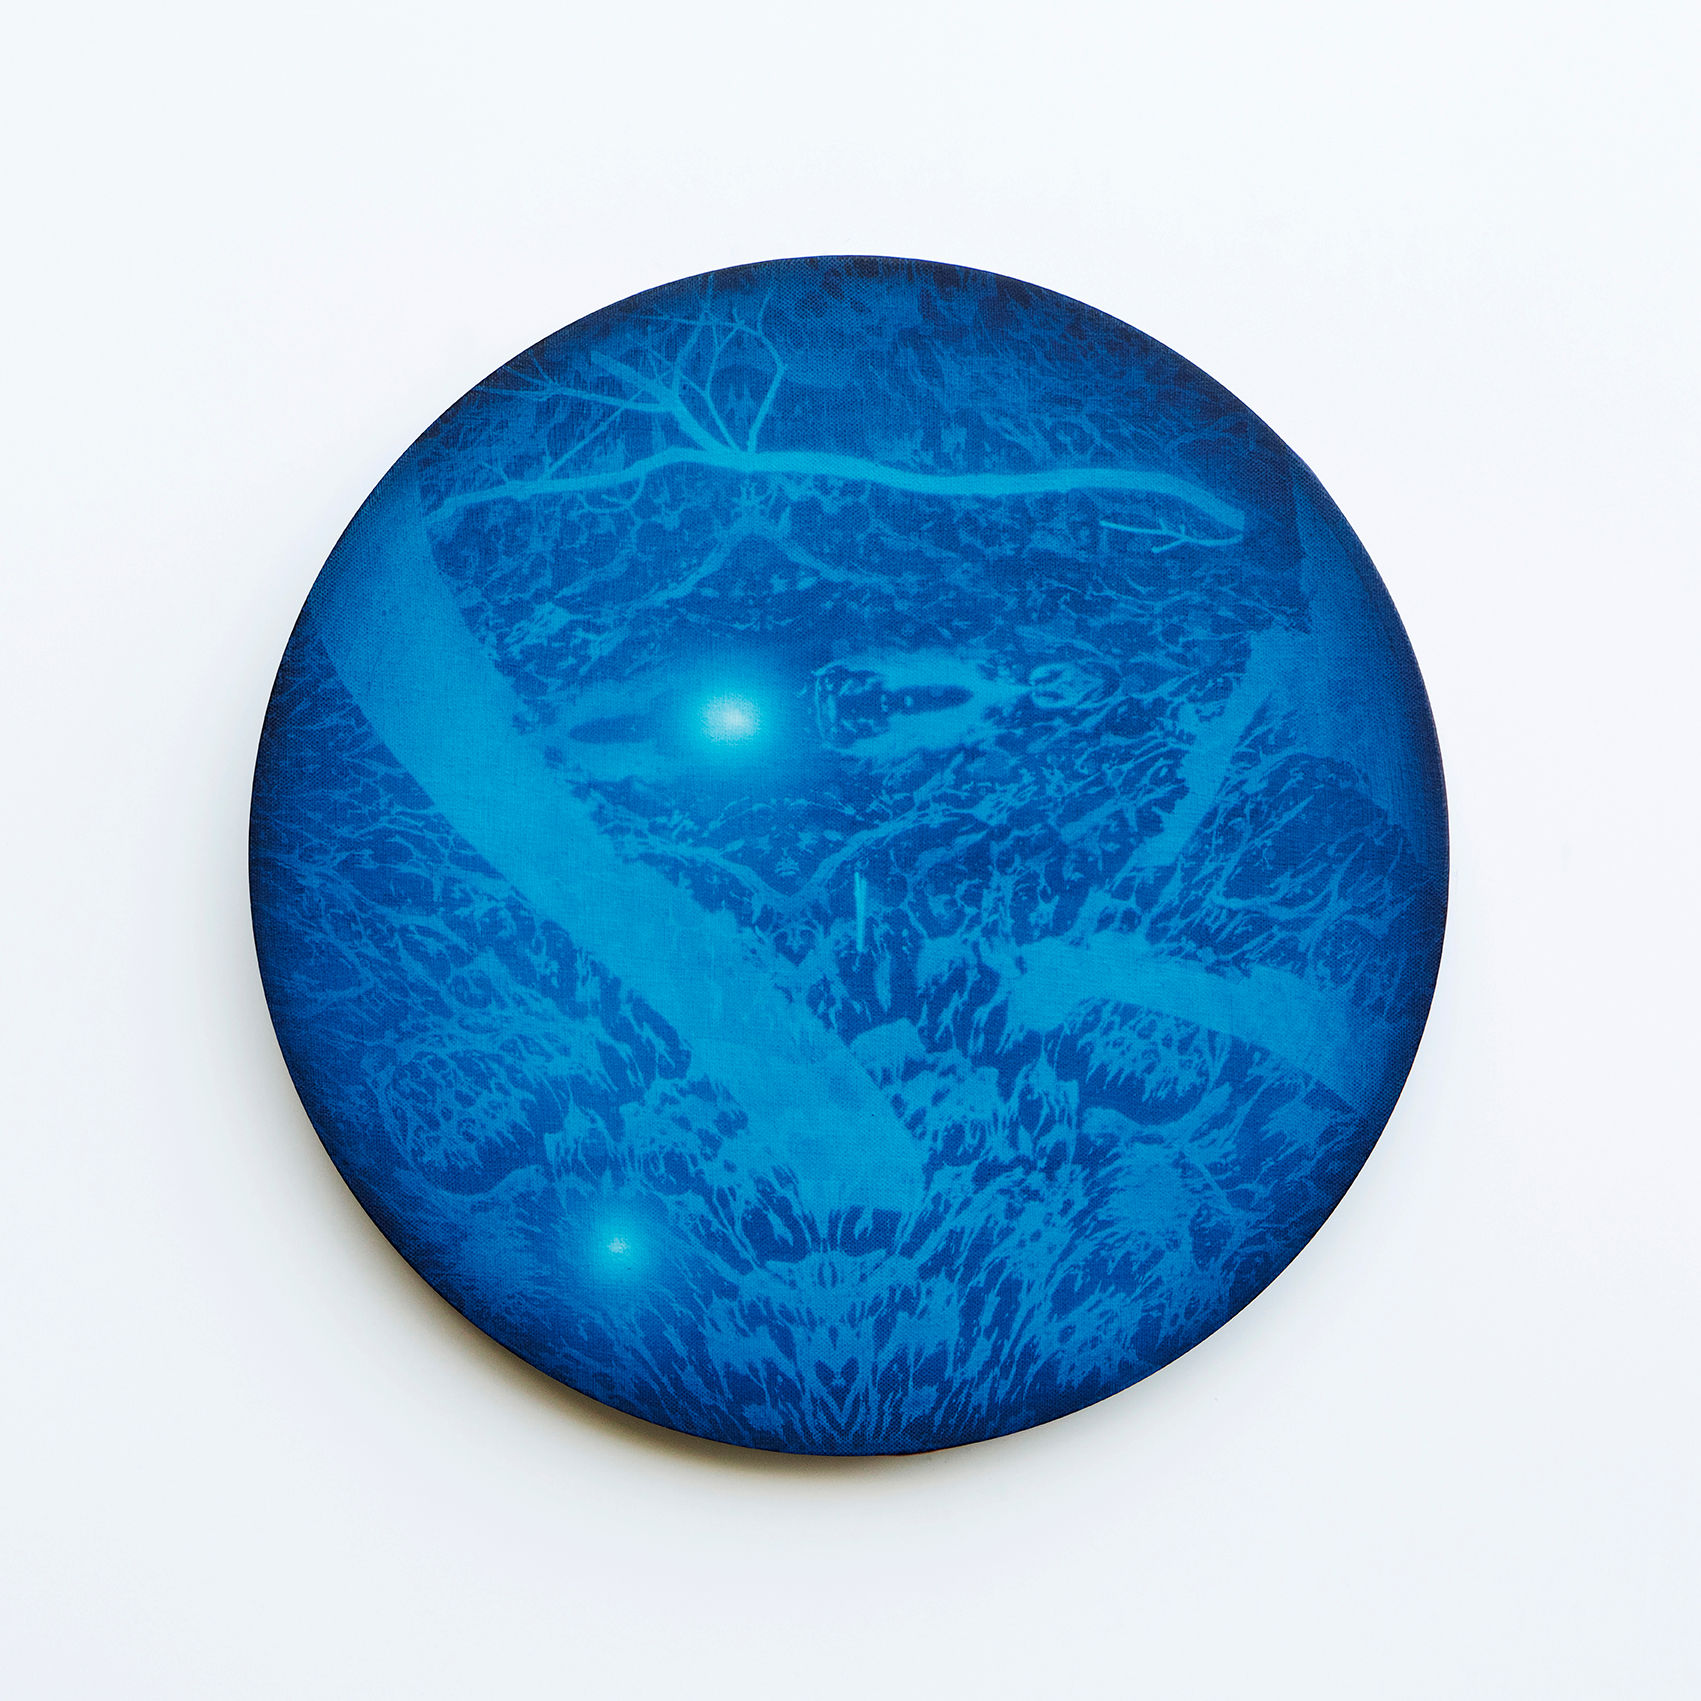 WATERSCAPE_내 안의 바깥 31, Diameter 40cm, Traditional pigment, water-print, water-drawing on canvas, 2018